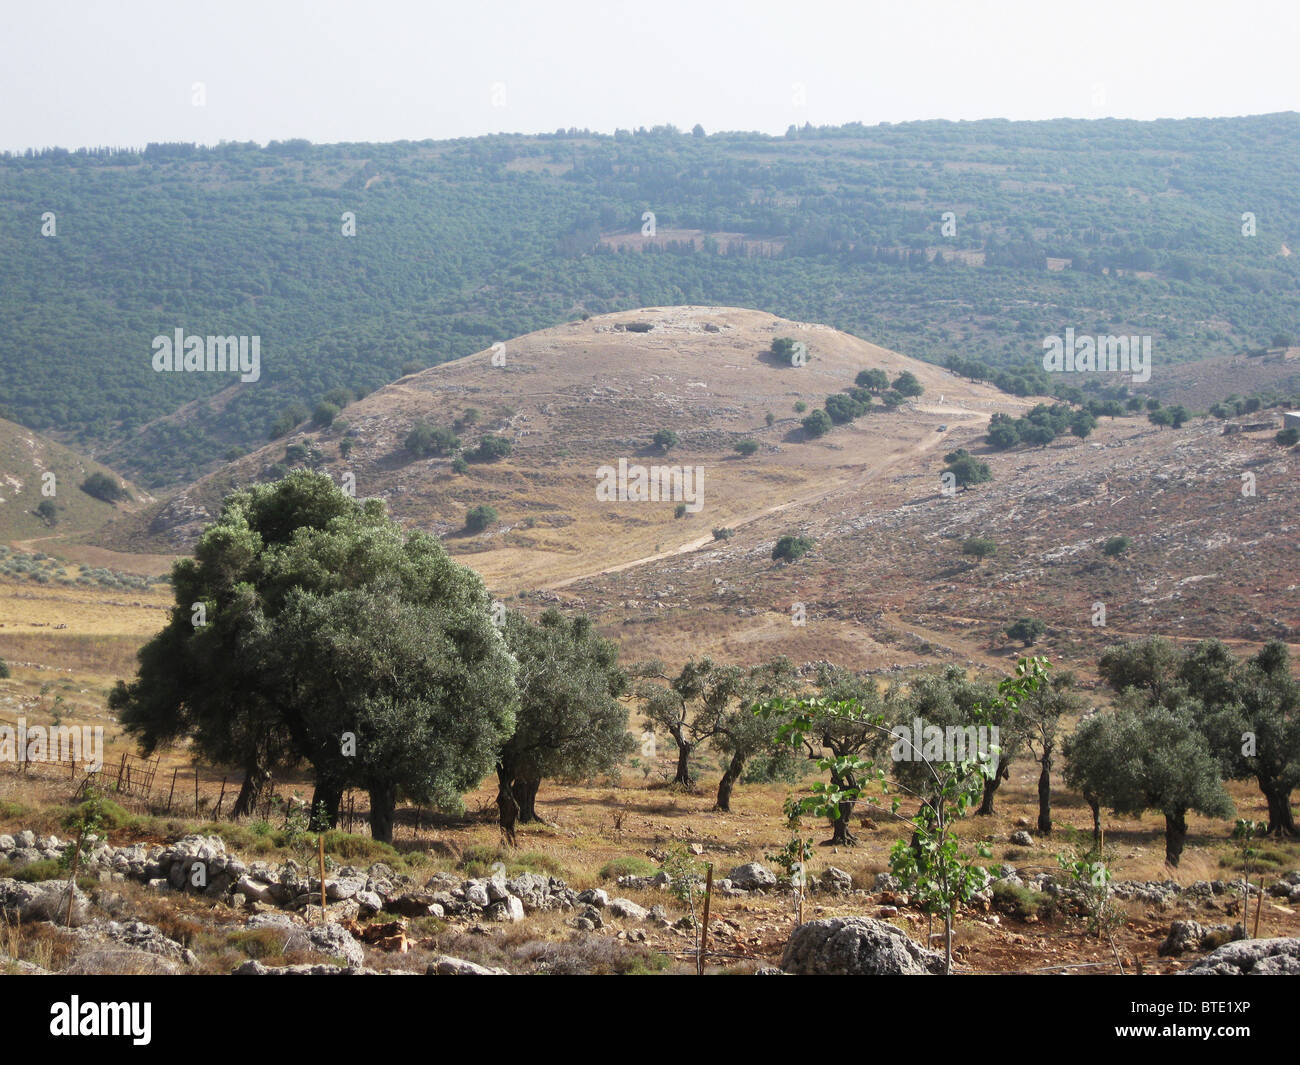 5499. Yodphat, Ancient city located in southern Galilee. Yodphat was one of the centers of the great revolt against - Stock Image